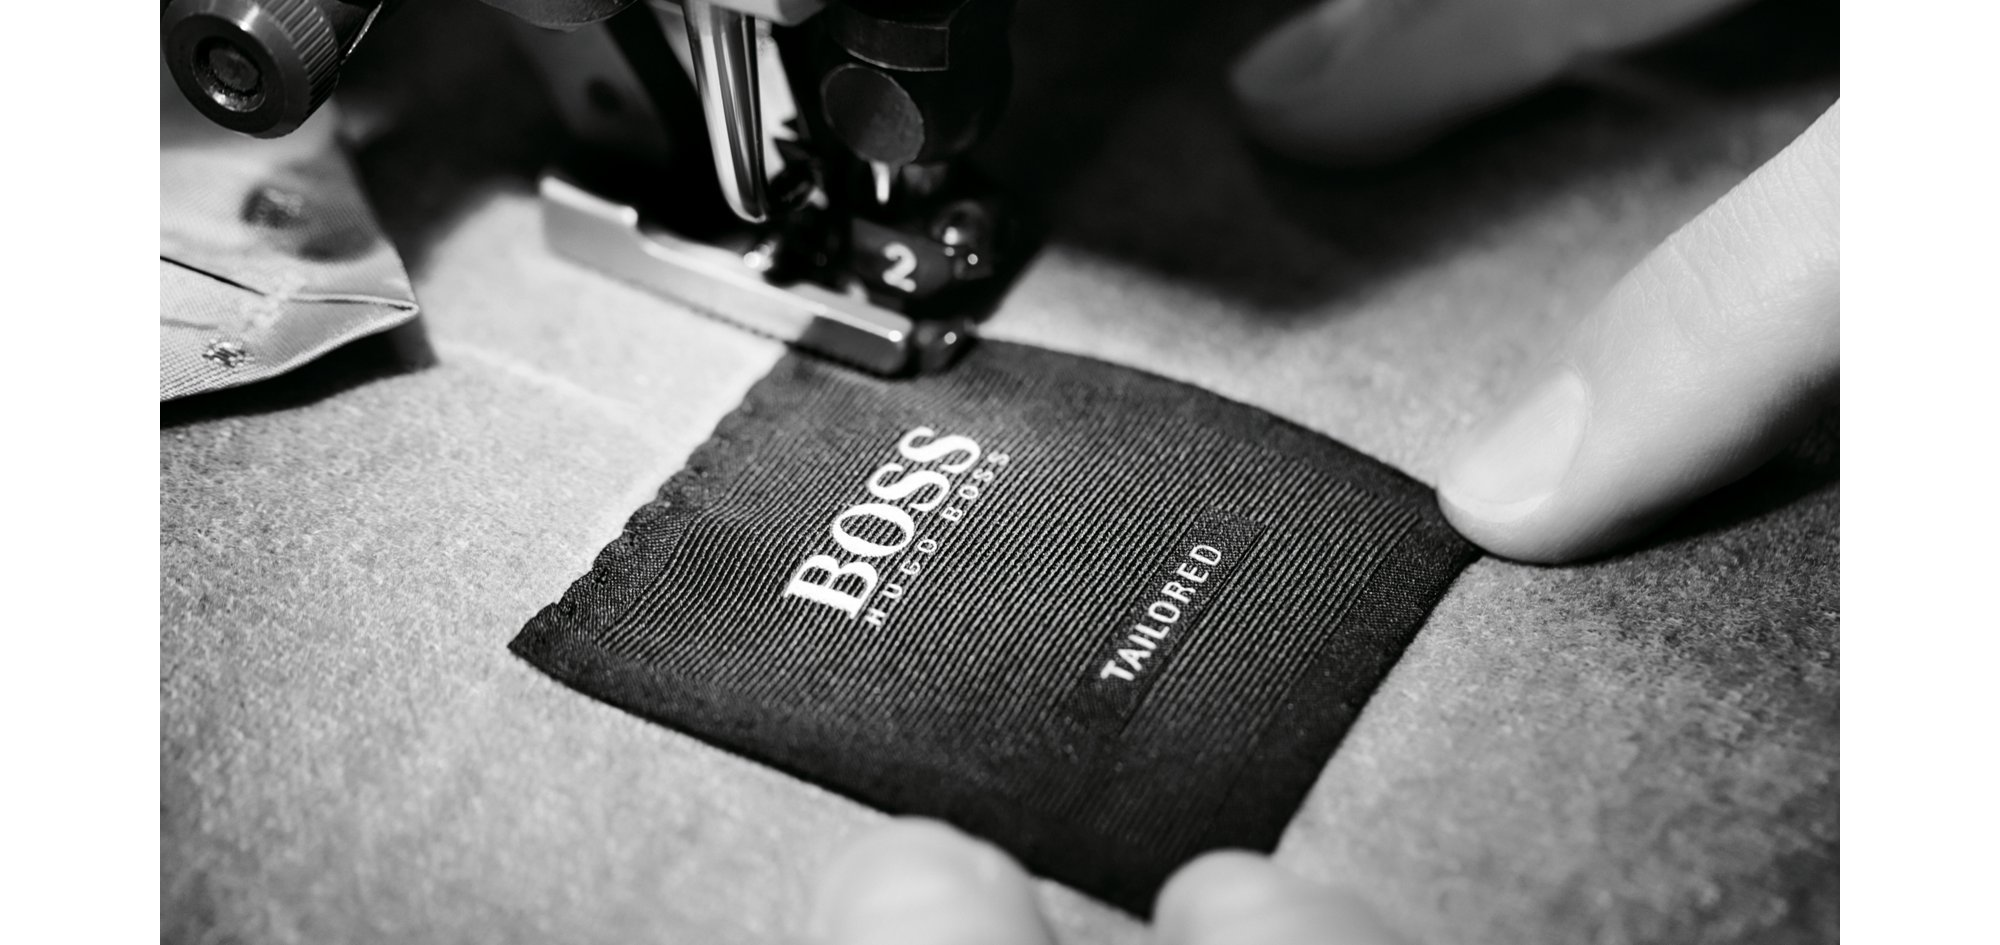 Tailoring process of the BOSS Tailored suit: Stitching the BOSS label